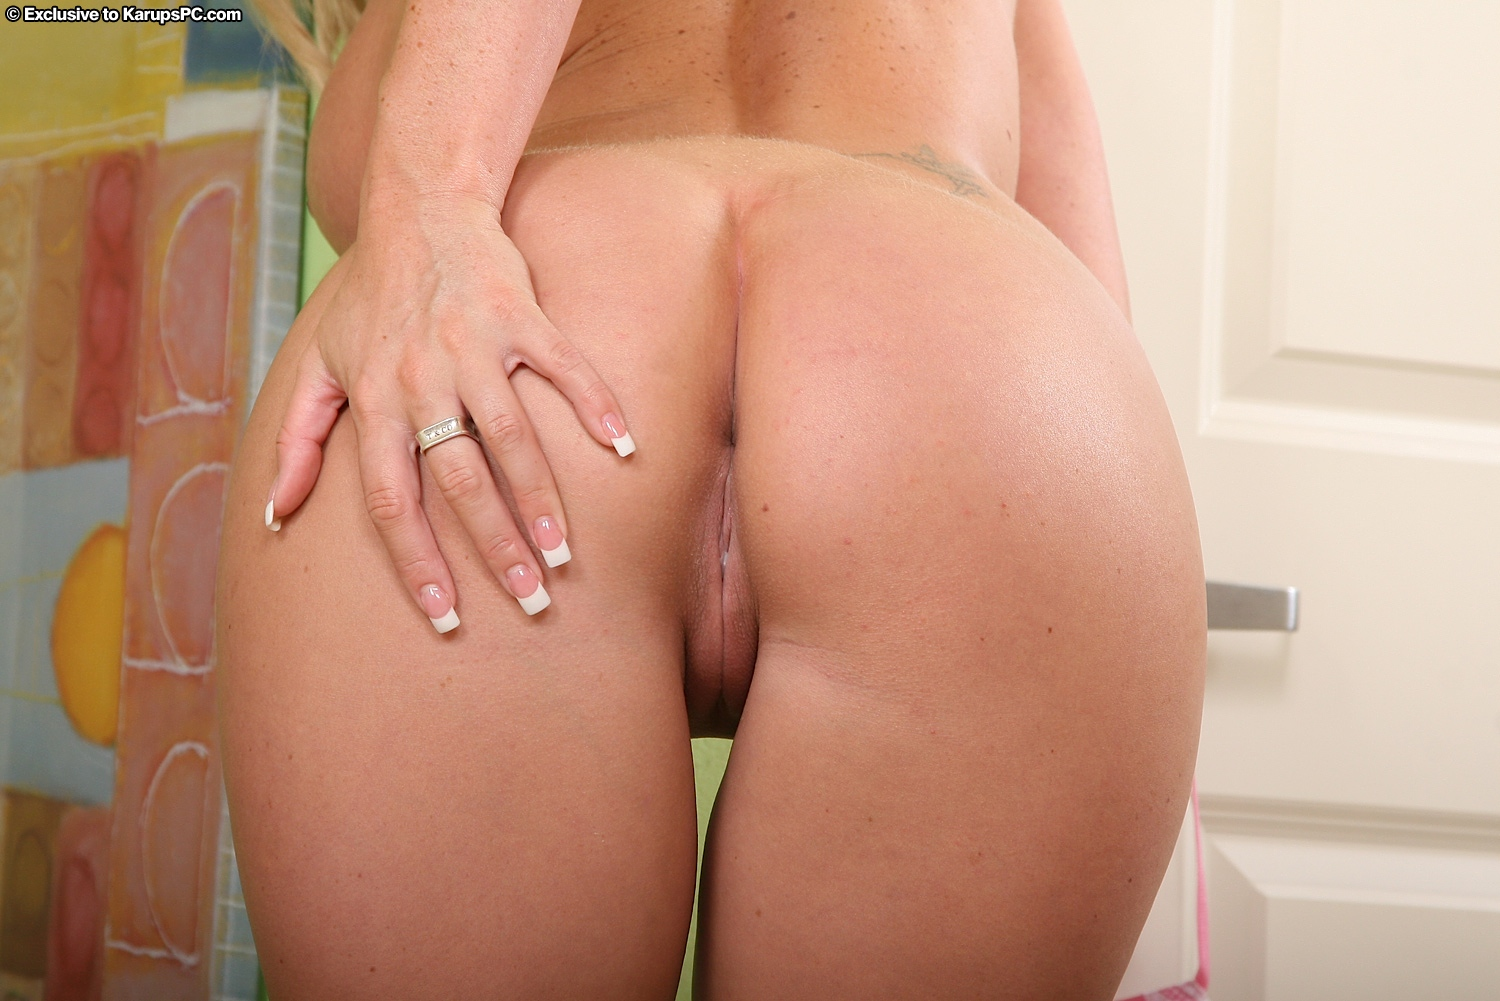 Panties down shaved pussy